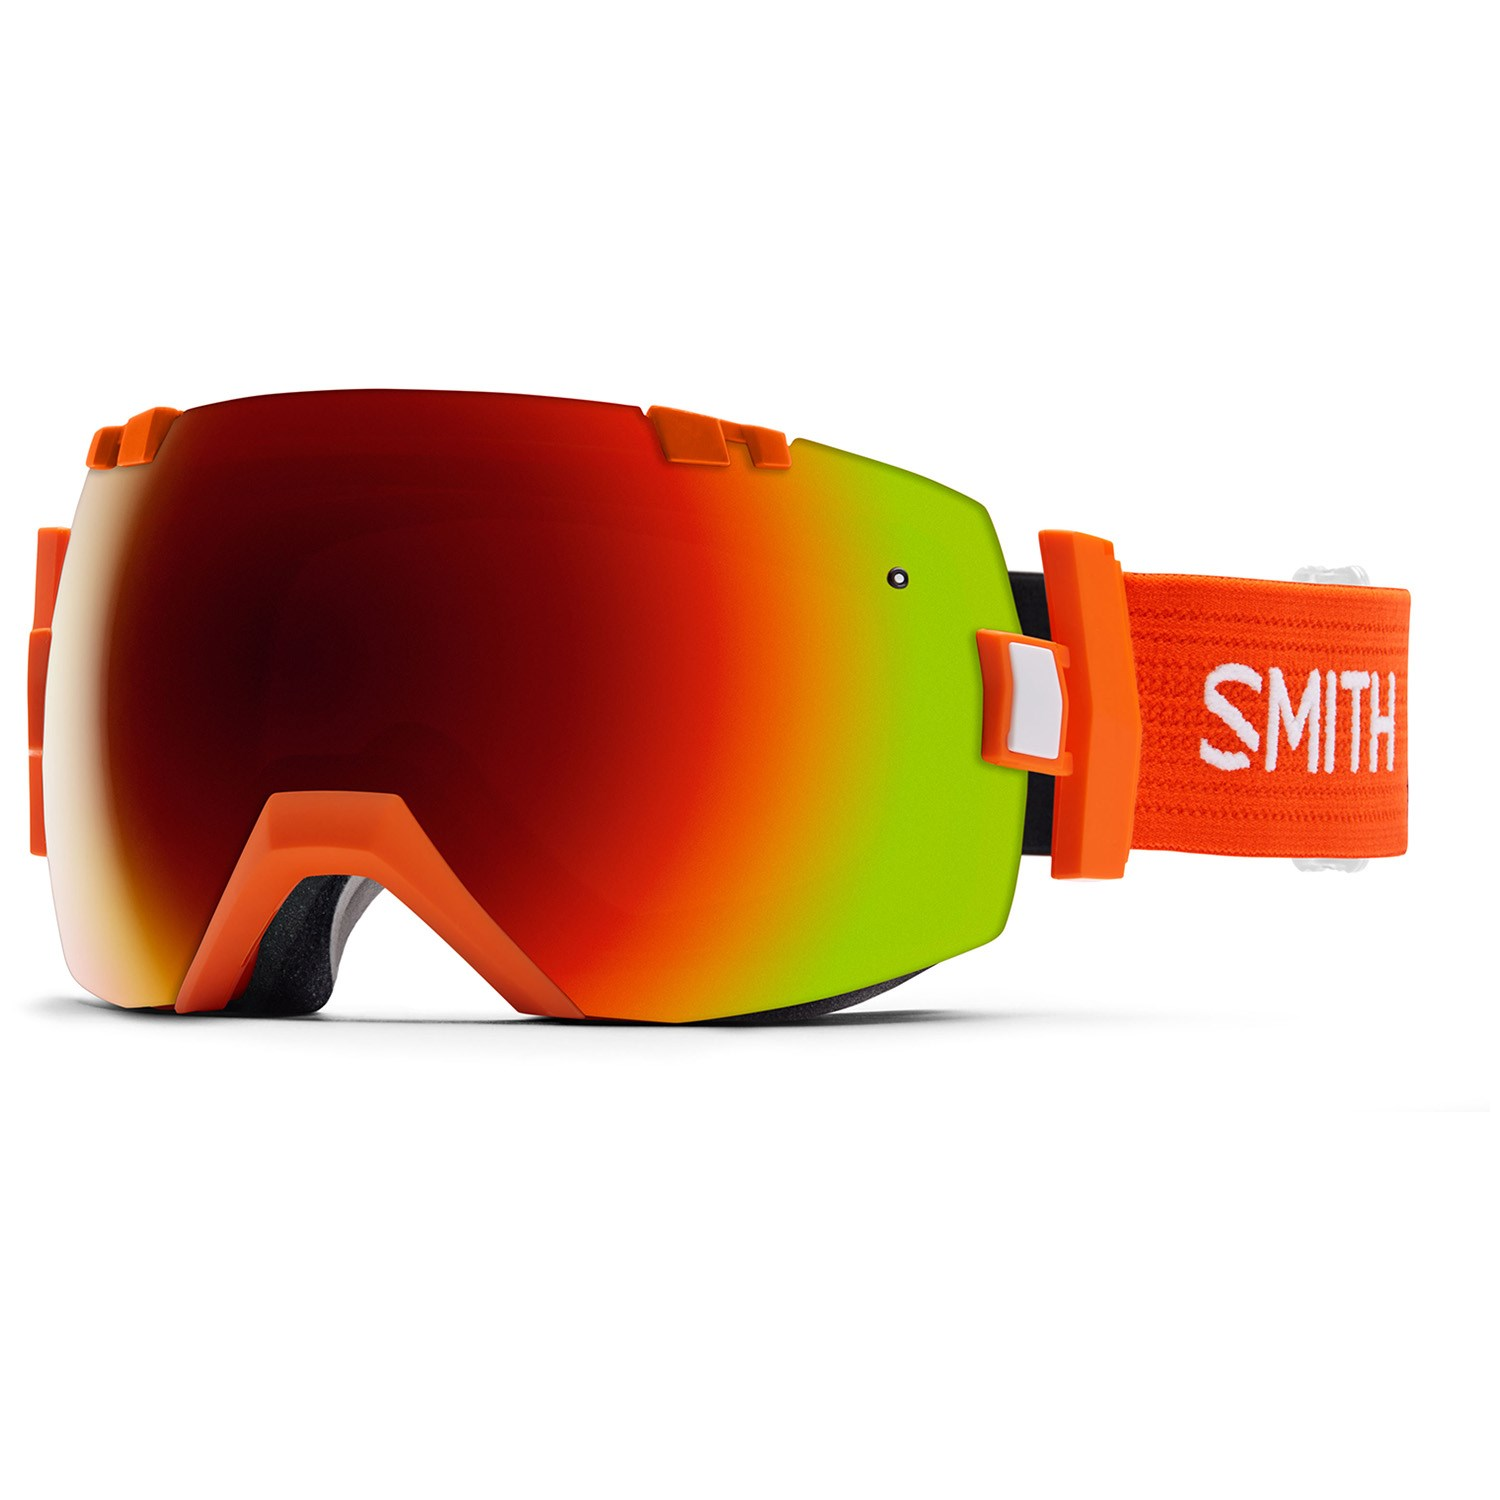 Smith I/OX Asian Fit Goggles | evo